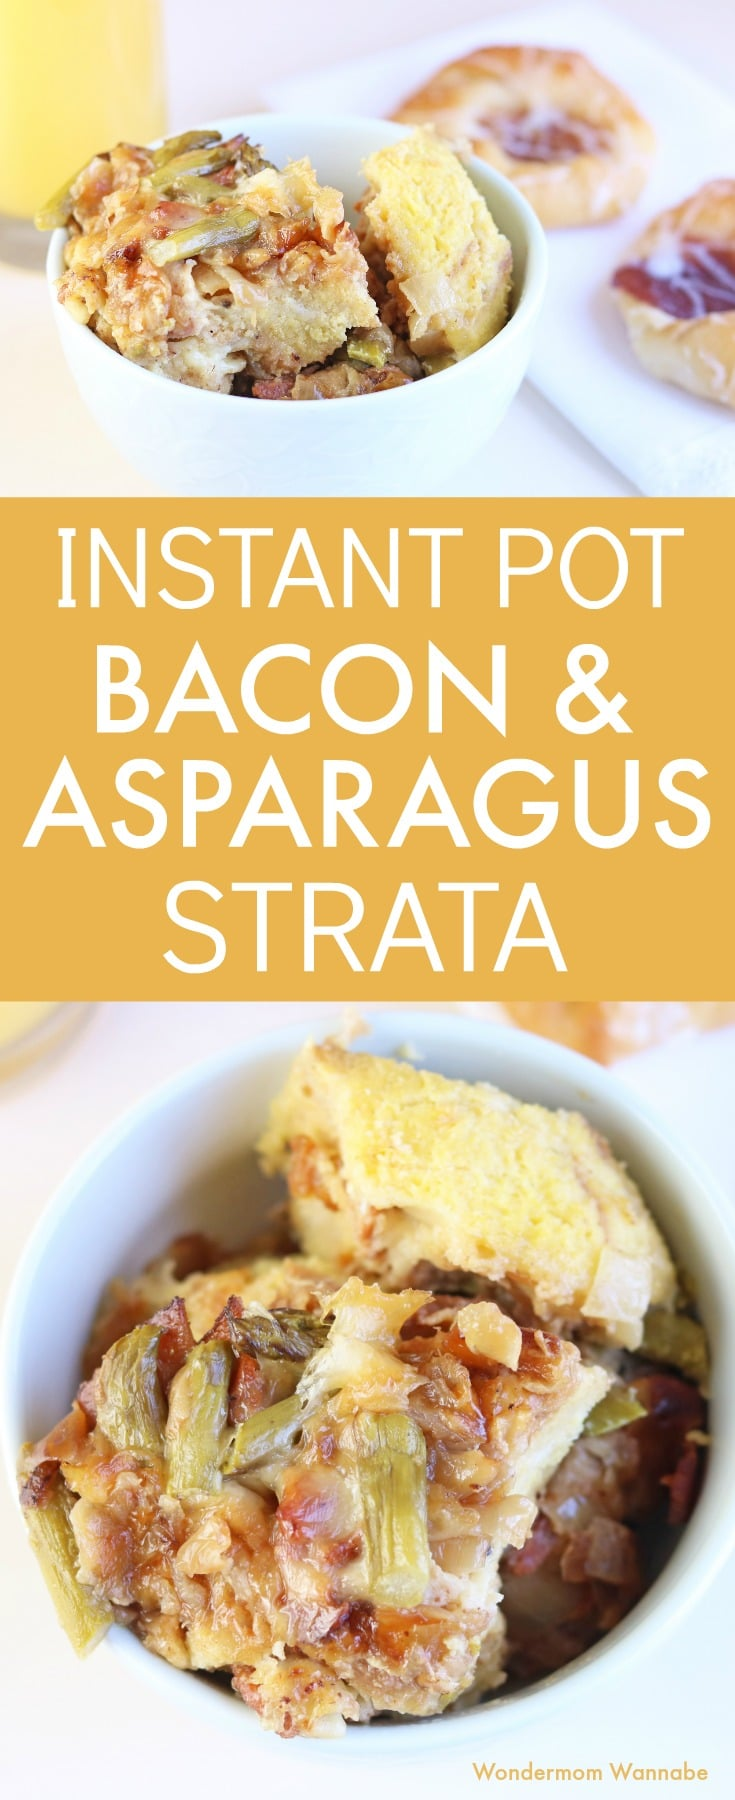 Instant Pot Bacon and Asparagus Strata